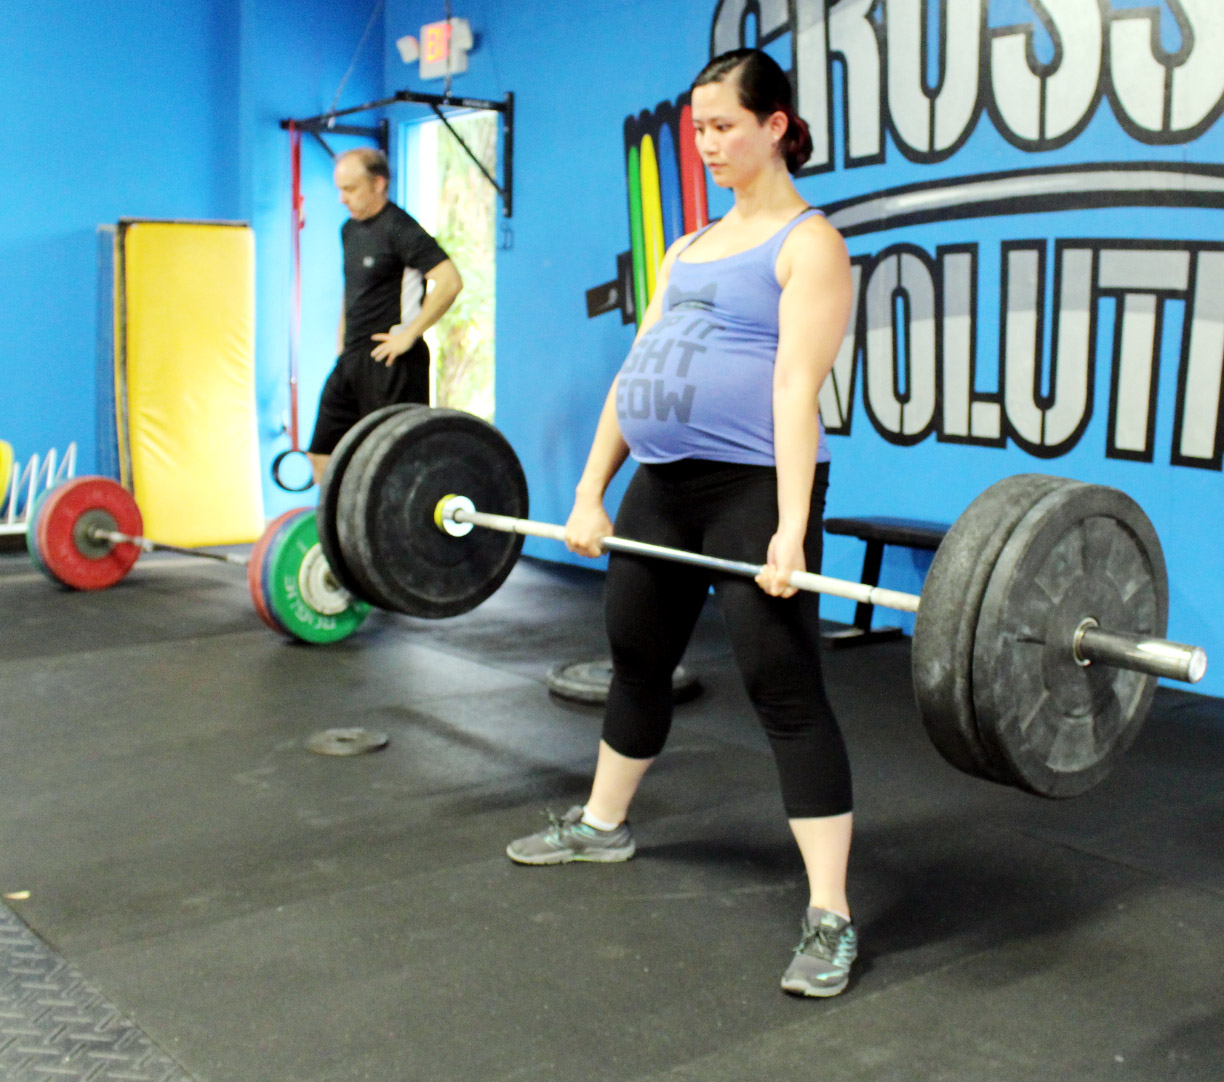 Anne deadlifting only a couple days before their family grew by 50% with an addition of a baby boy! Congratulations to you and Jason!